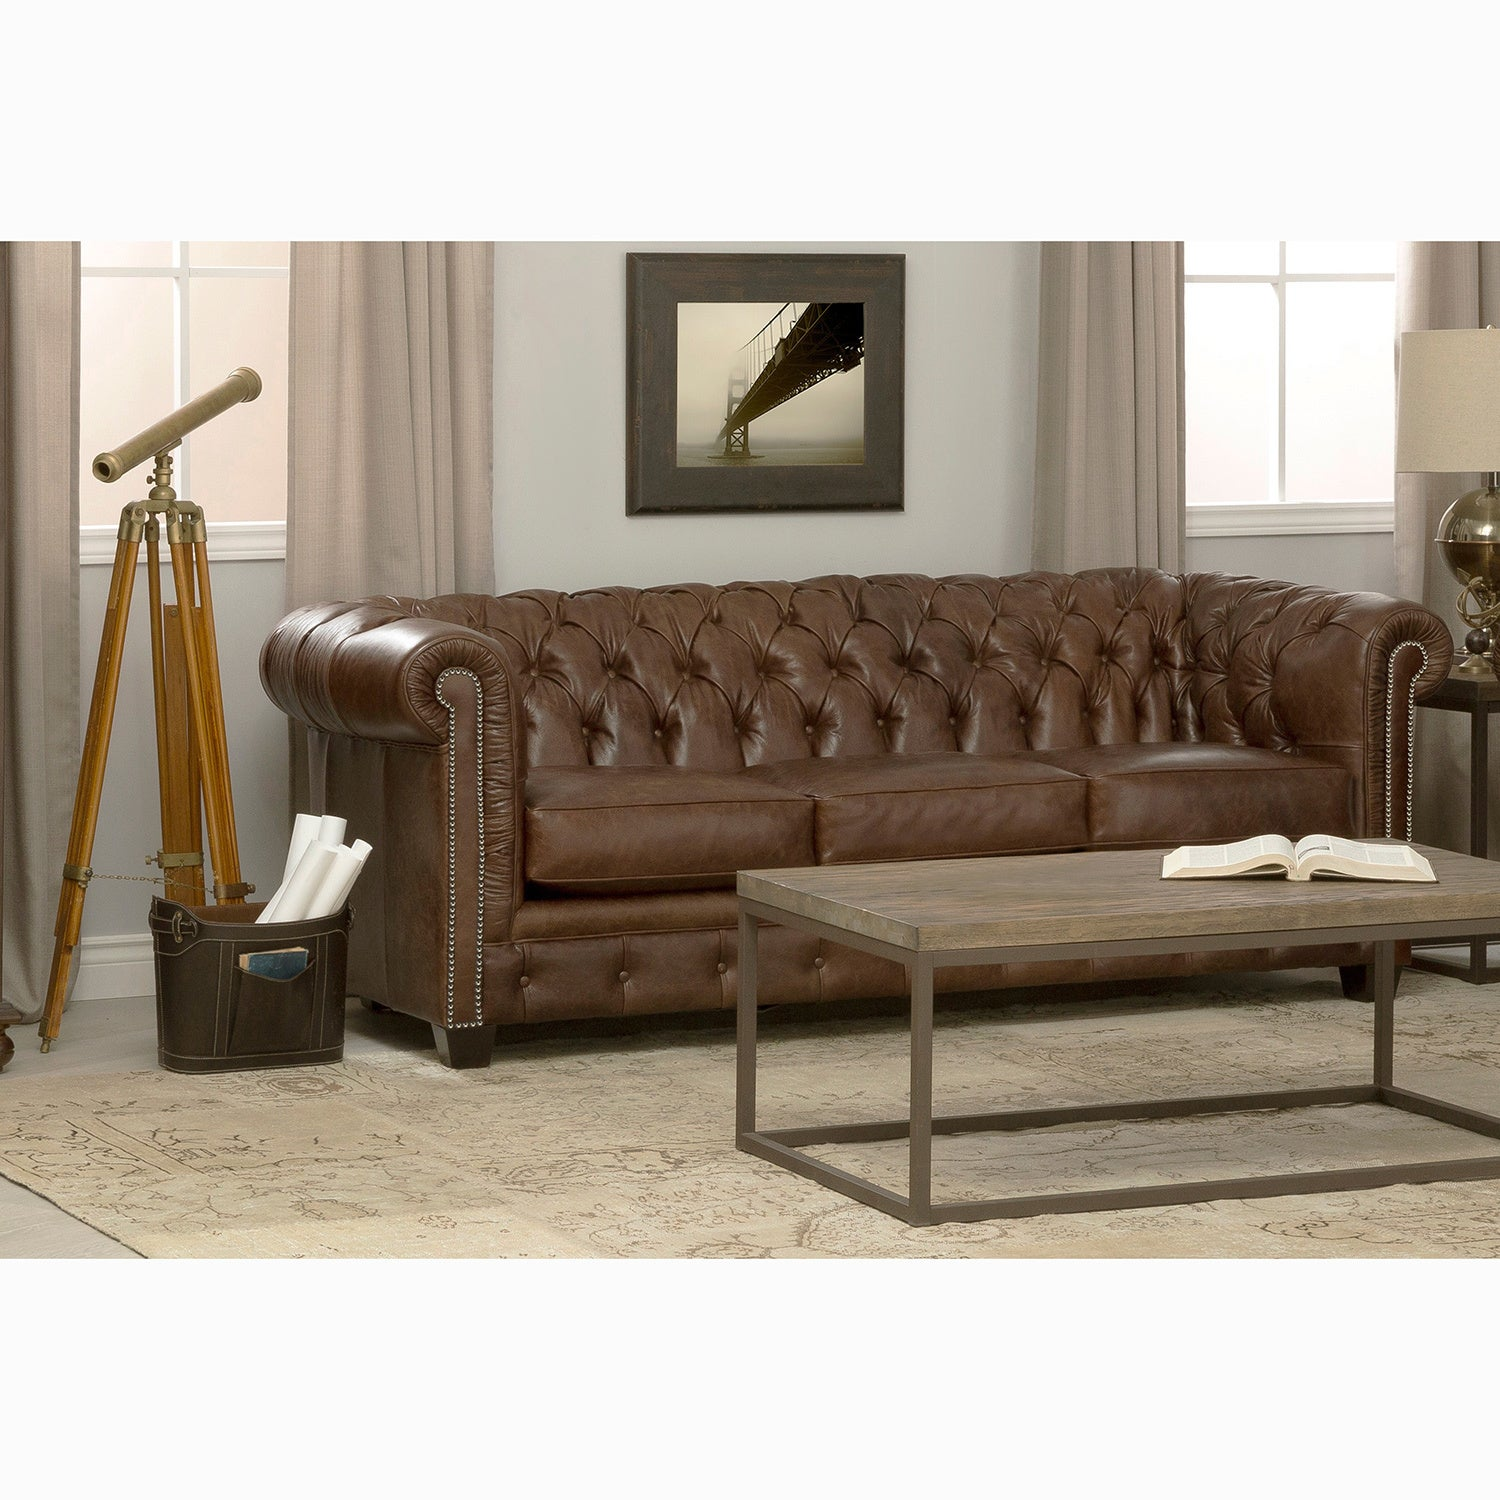 Rustic Han Tufted Distressed Brown Premium Italian Chesterfield Leather Sofa